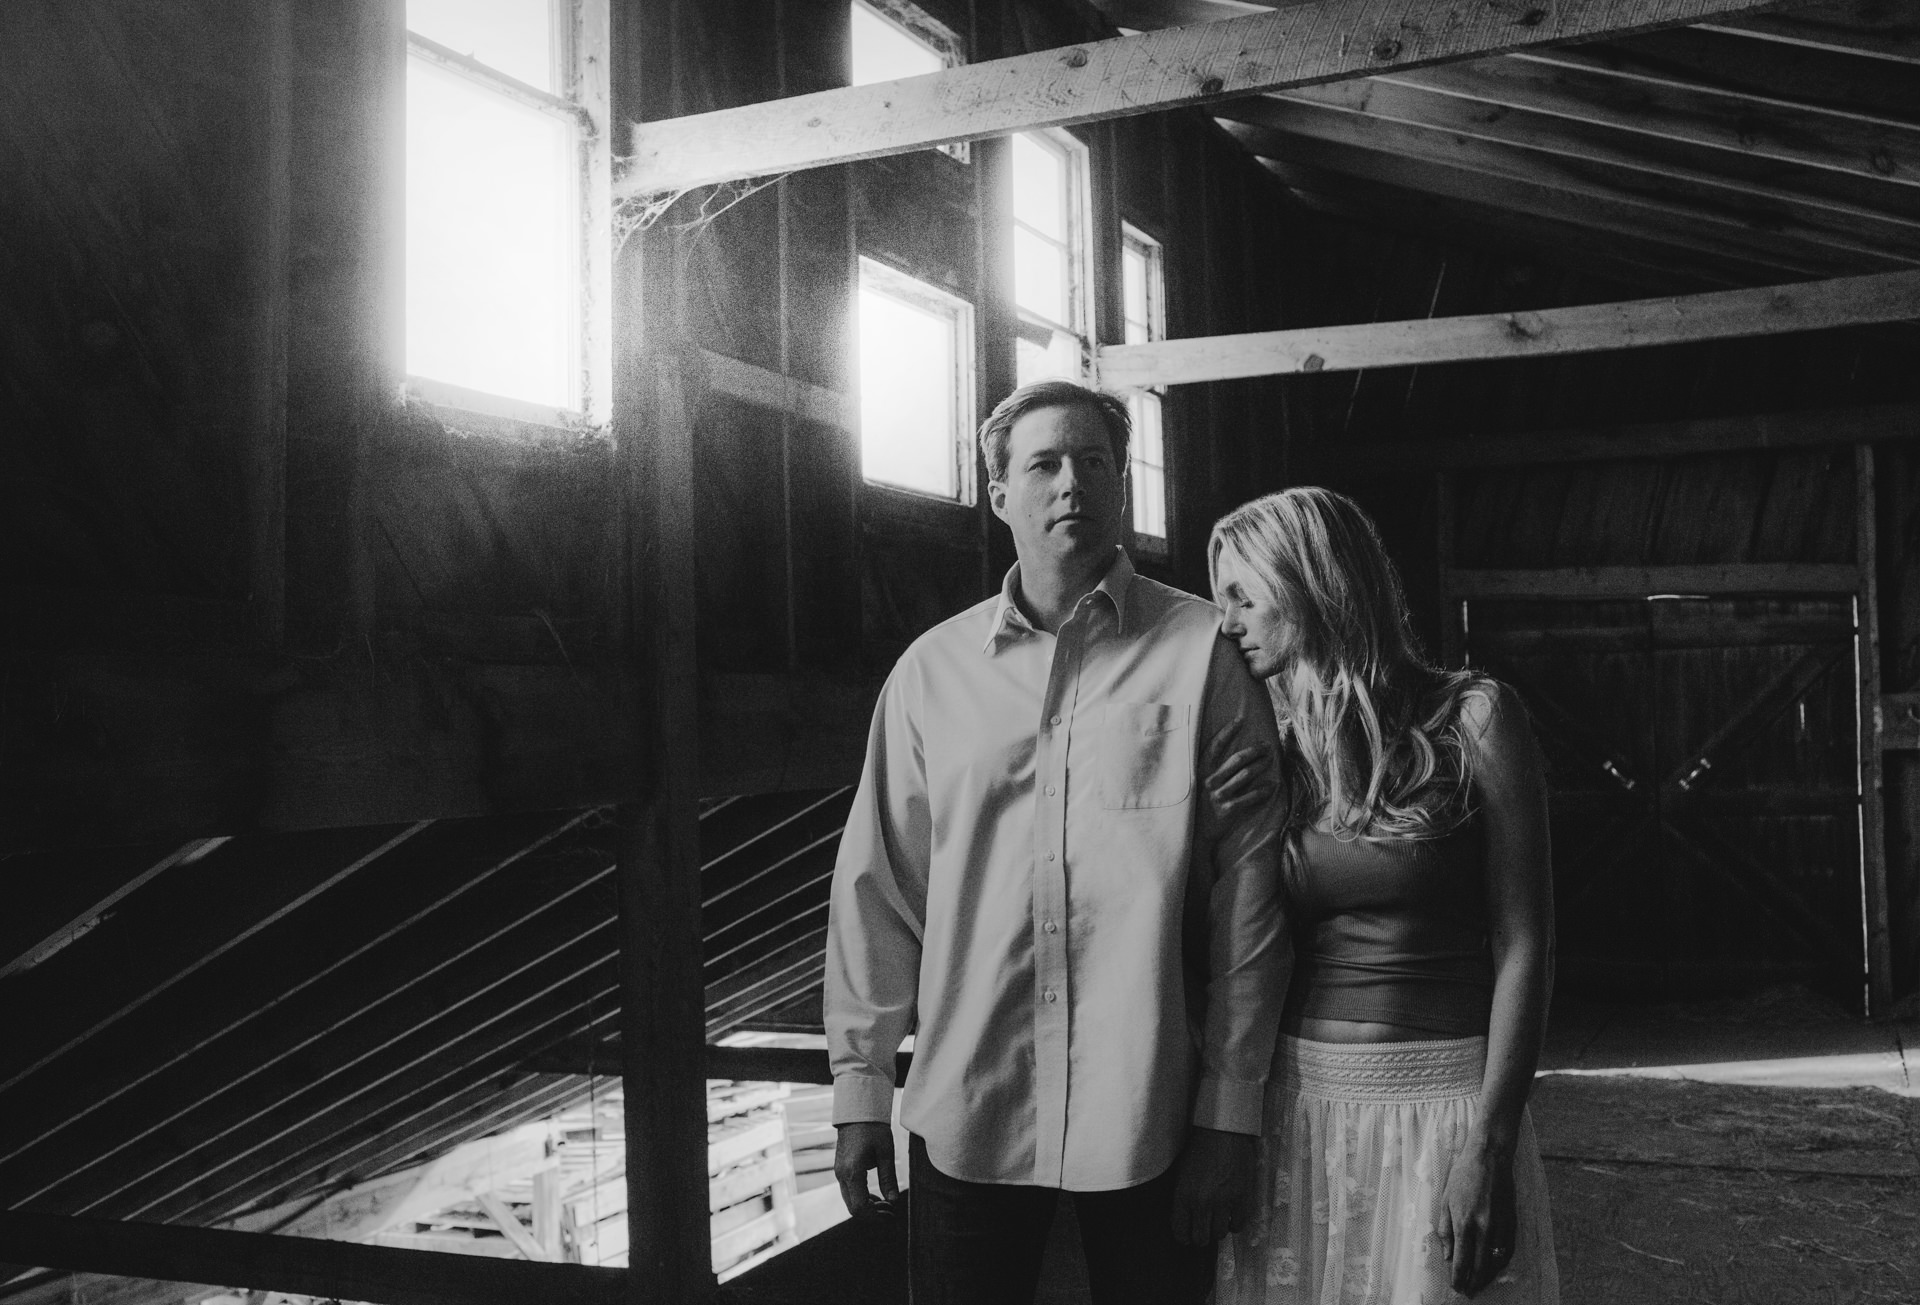 An engagement photo shoot in an old barn